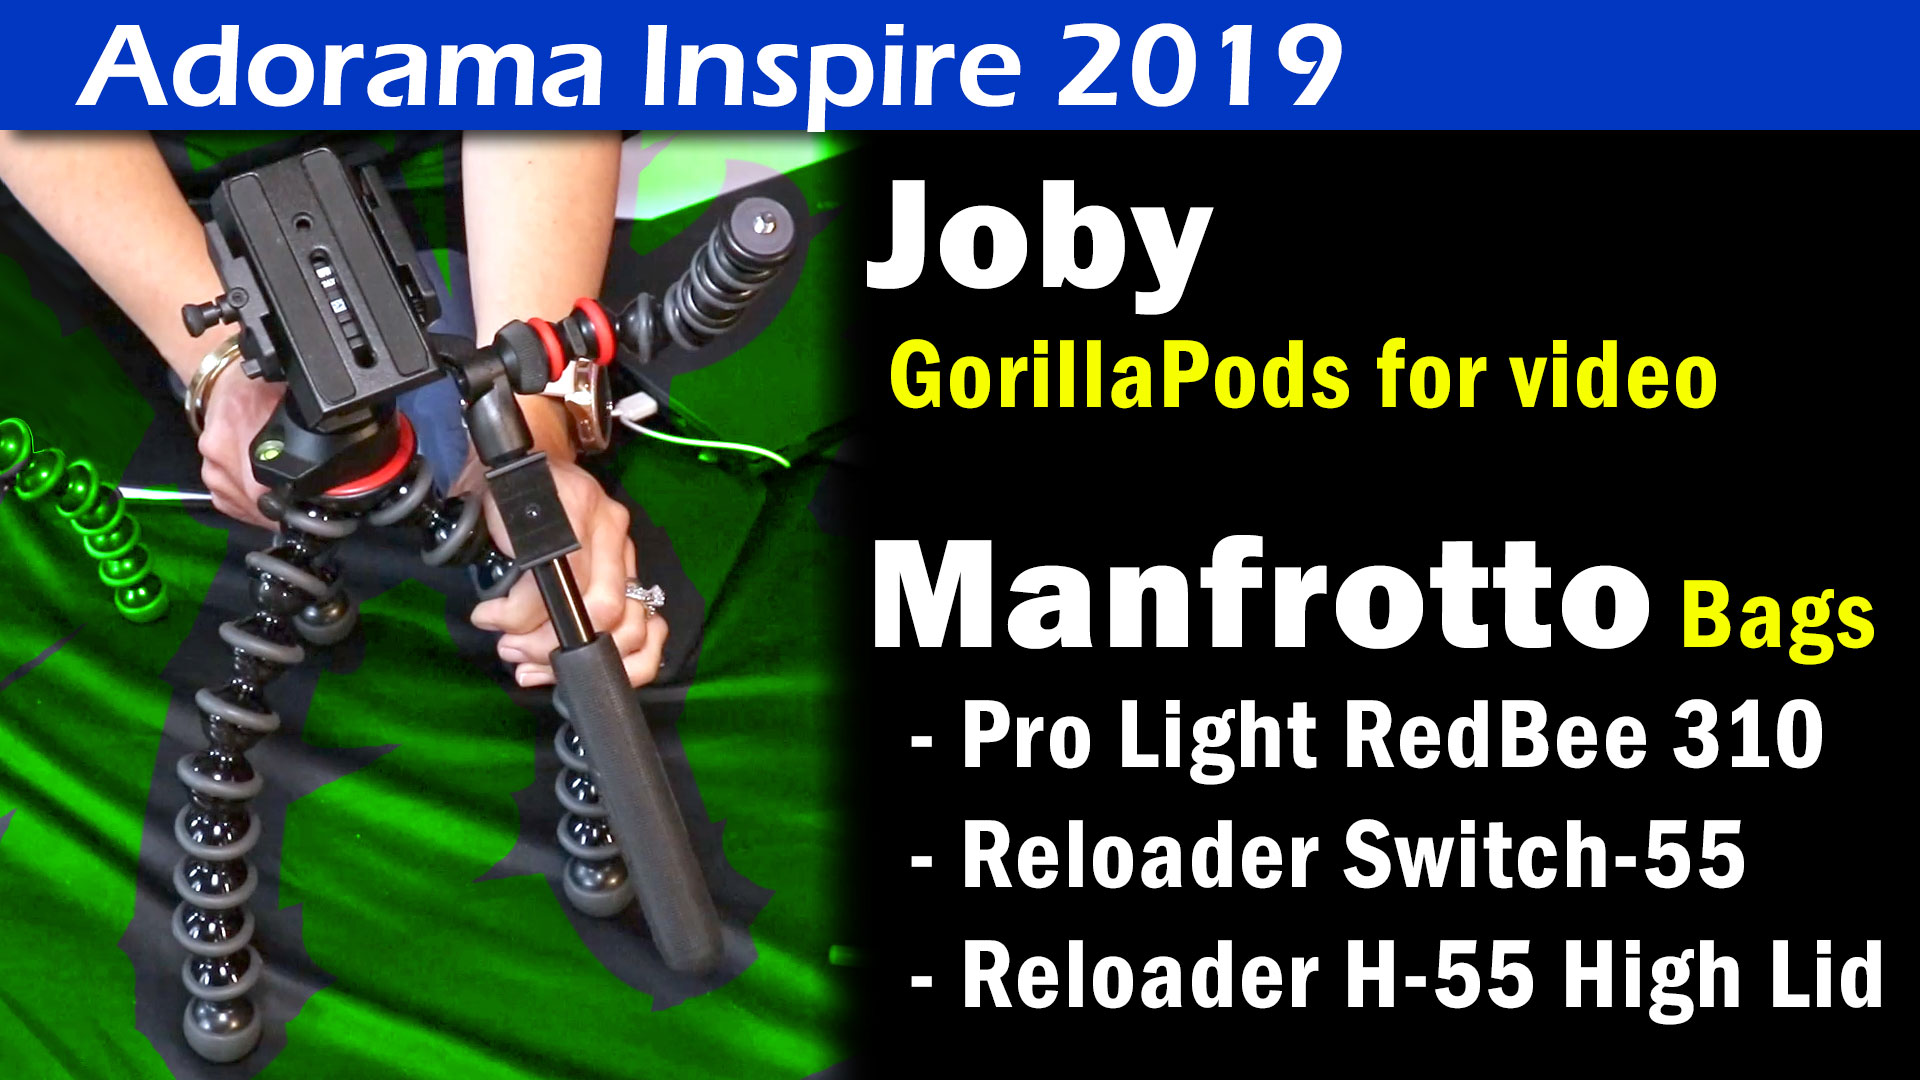 Joby GorillaPods & Manfrotto Bags 2019